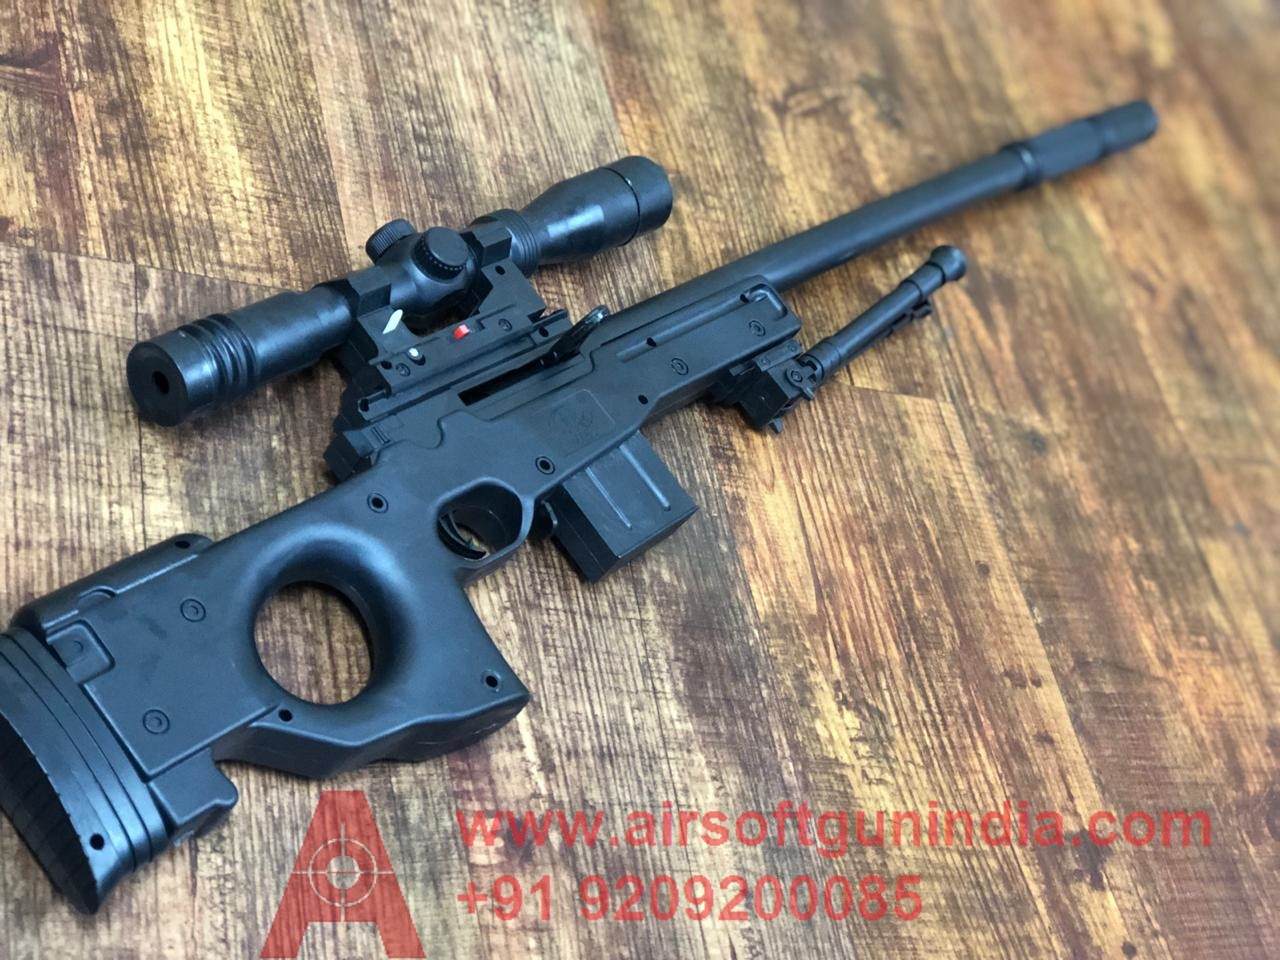 L96 Sniper Rifle By Airsoft Gun India